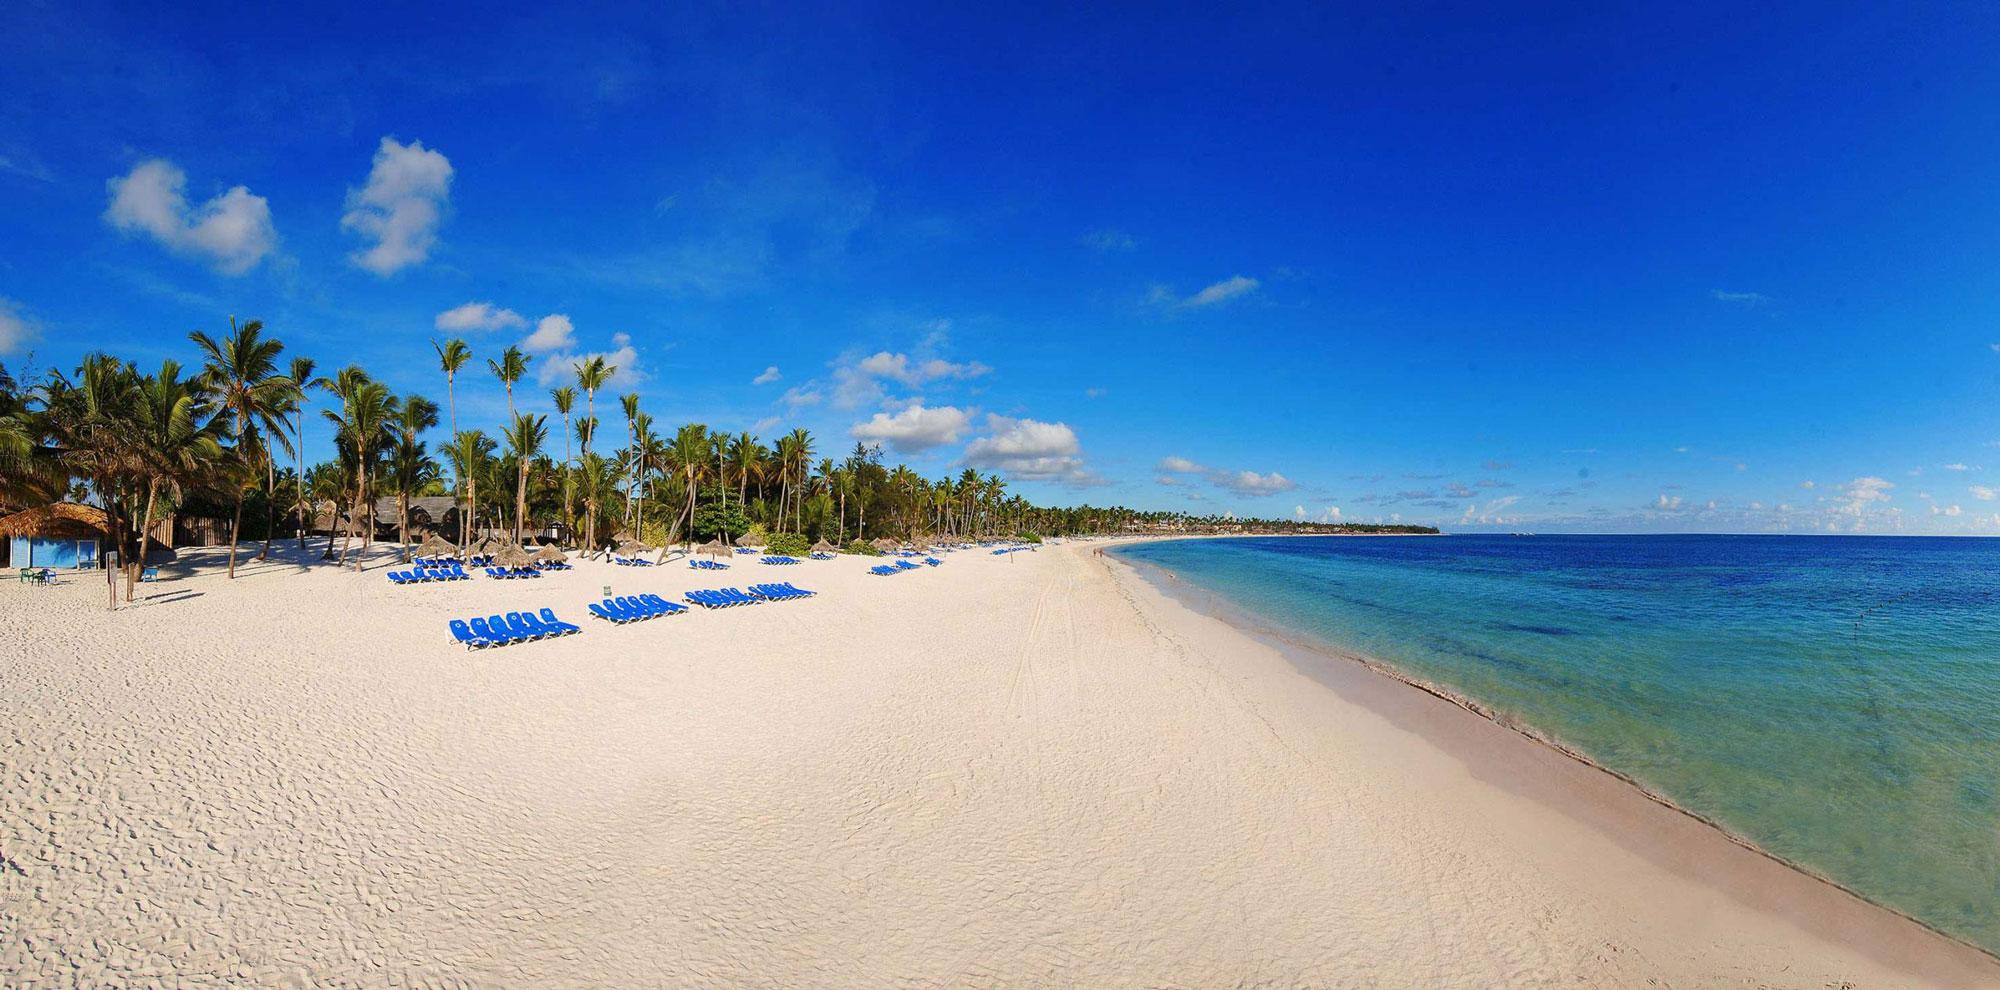 The Melia Caribe Tropical Golf  Beach Resort's lovely beach situated in vibrant Dominican Republic.